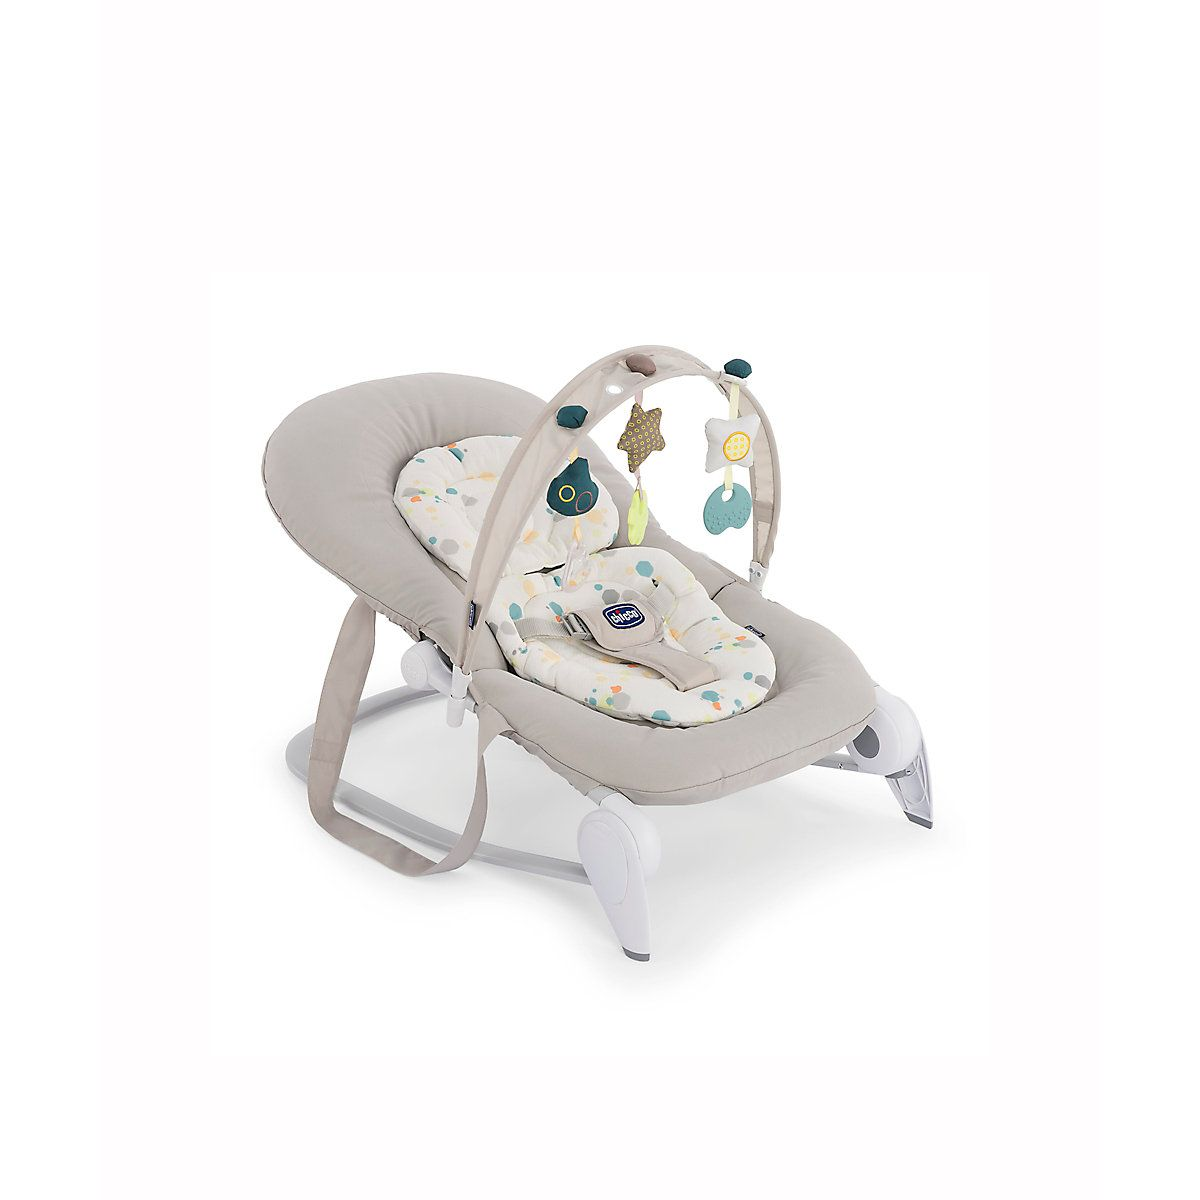 Stokke bouncer